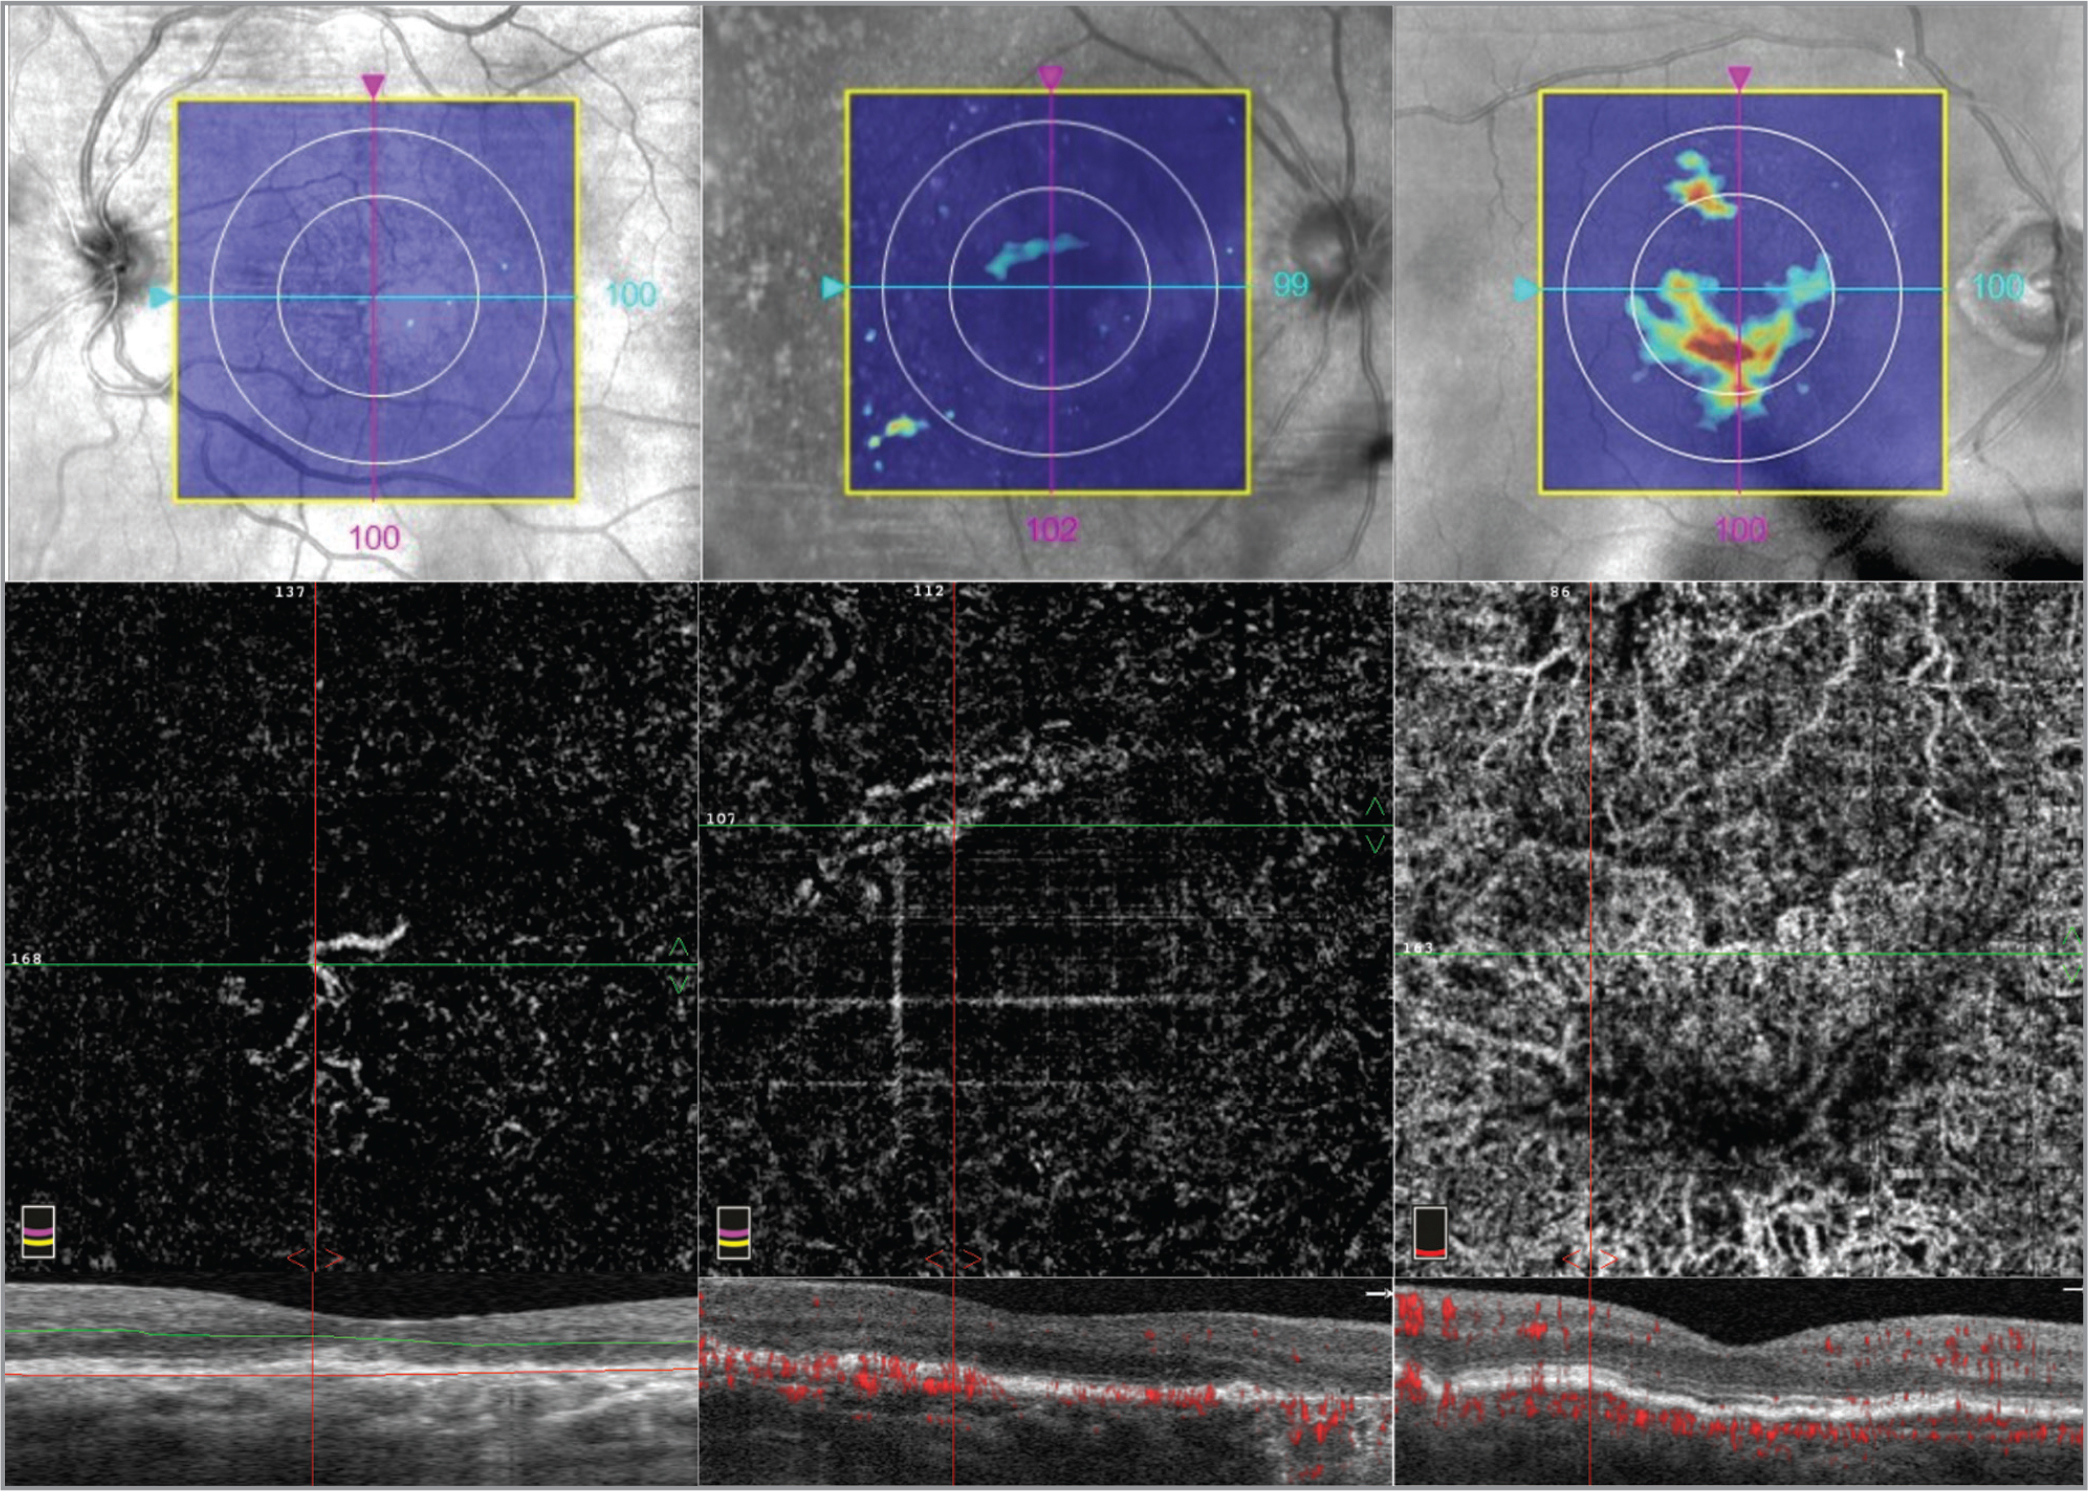 Subclinical choroidal neovascularization (CNV) detected by optical coherence tomography angiography (OCTA) in patients with early and intermediate age-related macular degeneration (AMD). All OCTA images were manually reviewed with a lower segmentation border at Bruch's membrane. (Left column) Case example categorized as a low drusen burden (no calculable drusen area or volume) with extrafoveal RPE atrophy, measured by a 5-mm diameter circle retinal pigment epithelium (RPE) elevation map (top). OCTA reveals neovascular lesion in the outer retina (middle) that corresponds to a sub-RPE deposit at the margin of an RPE atrophy on the horizontal cross-sectional optical coherence tomography (OCT) (bottom). (Middle column) Case example categorized as an intermediate drusen burden (drusen area = 0.5 mm2, volume = 0.01 mm3) with a well-demarcated area of RPE elevation on the map (top). OCTA reveals a subclinical CNV lesion (middle) that corresponds to an area of vascularized sub-RPE material mimicking the appearance of drusen on horizontal cross-sectional OCT (bottom). An extrafoveal RPE atrophy is also noted. (Right column) Case example categorized as a high drusen burden (drusen area = 4.4 mm2, volume = 0.21 mm3), as evidenced by RPE elevation map (top). OCTA scan reveals a complex neovascular lesion (middle) corresponding to vascularized RPE elevation on horizontal cross-sectional OCT (bottom).